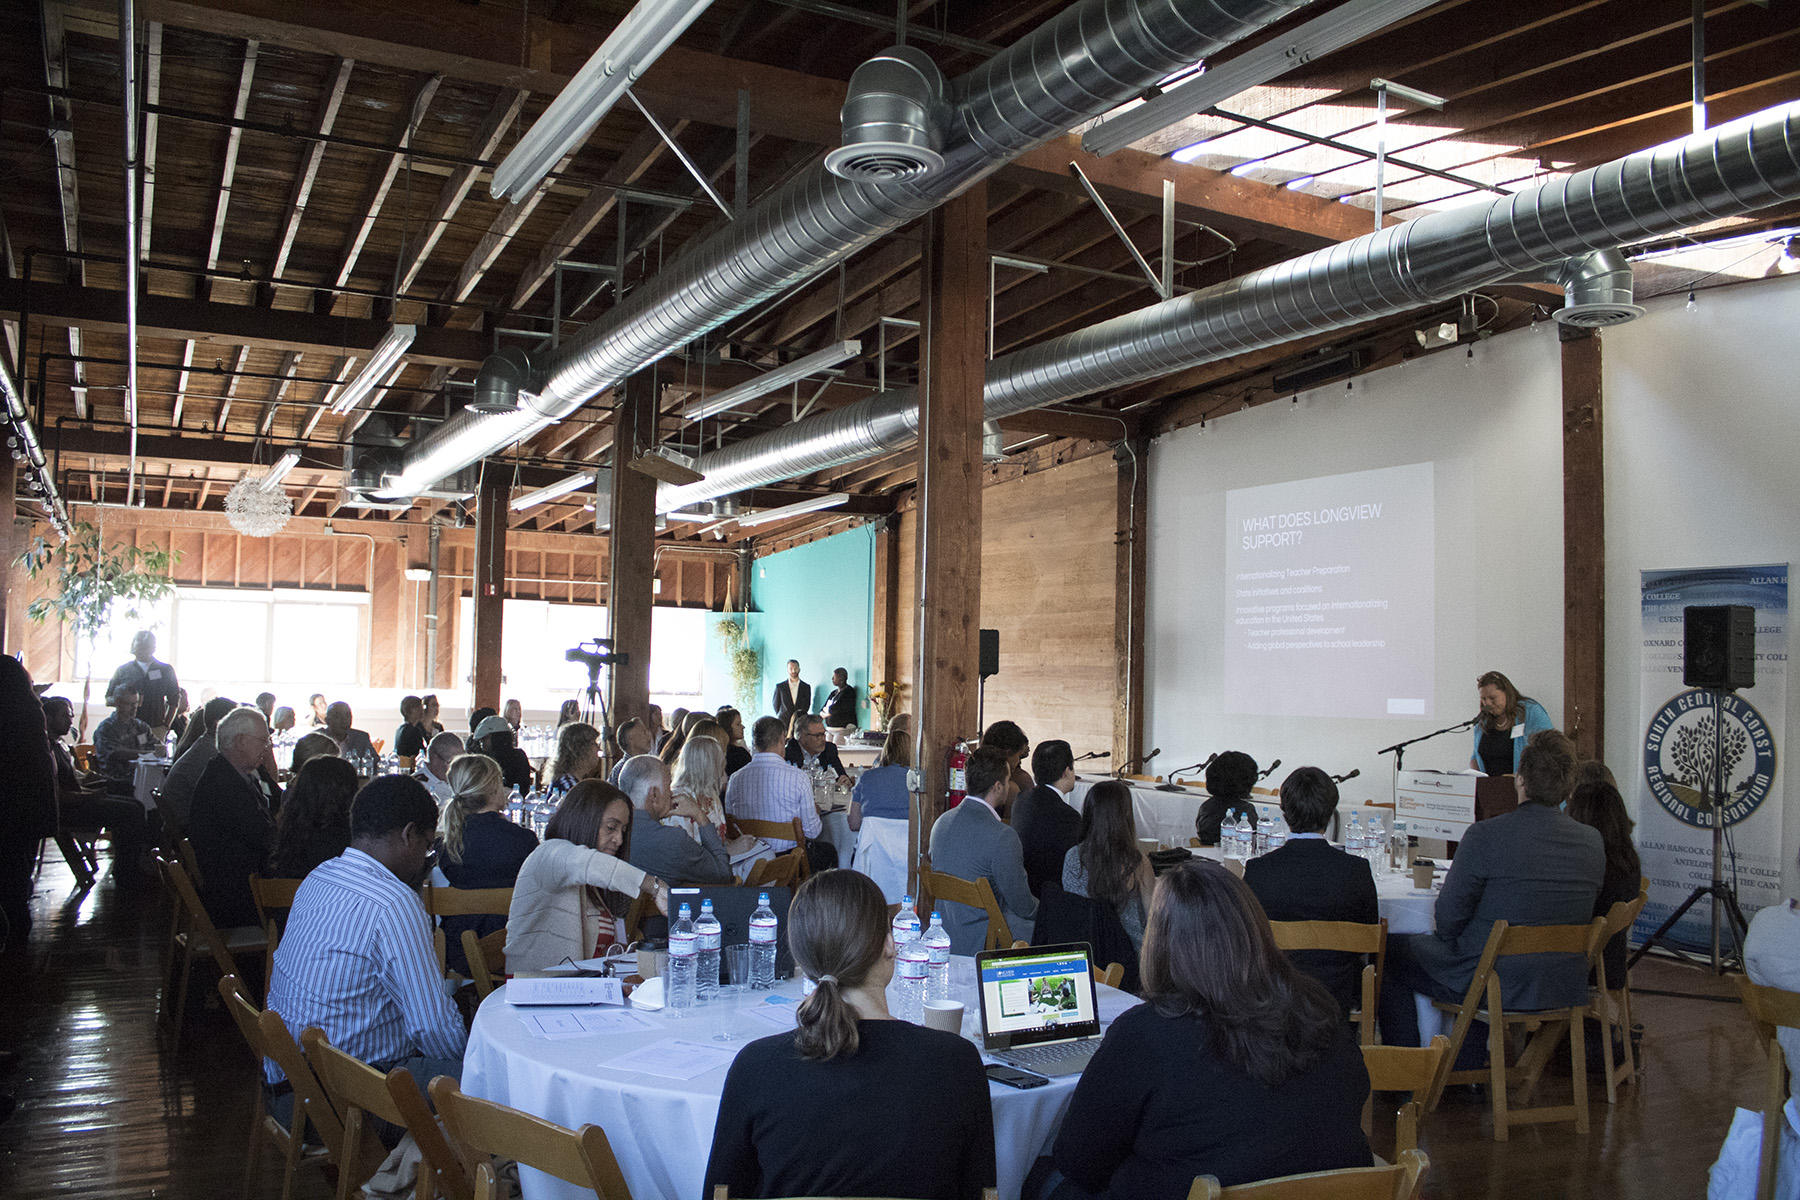 A group of teachers, counselors, and students from across the region gather to discuss the understanding and appreciation of international issues at the Global Competence Summit on Friday, Nov. 4, at Narrative Loft in Santa Barbara. The event included a keynote speaker, a series of panel discussions and an innovation lab.